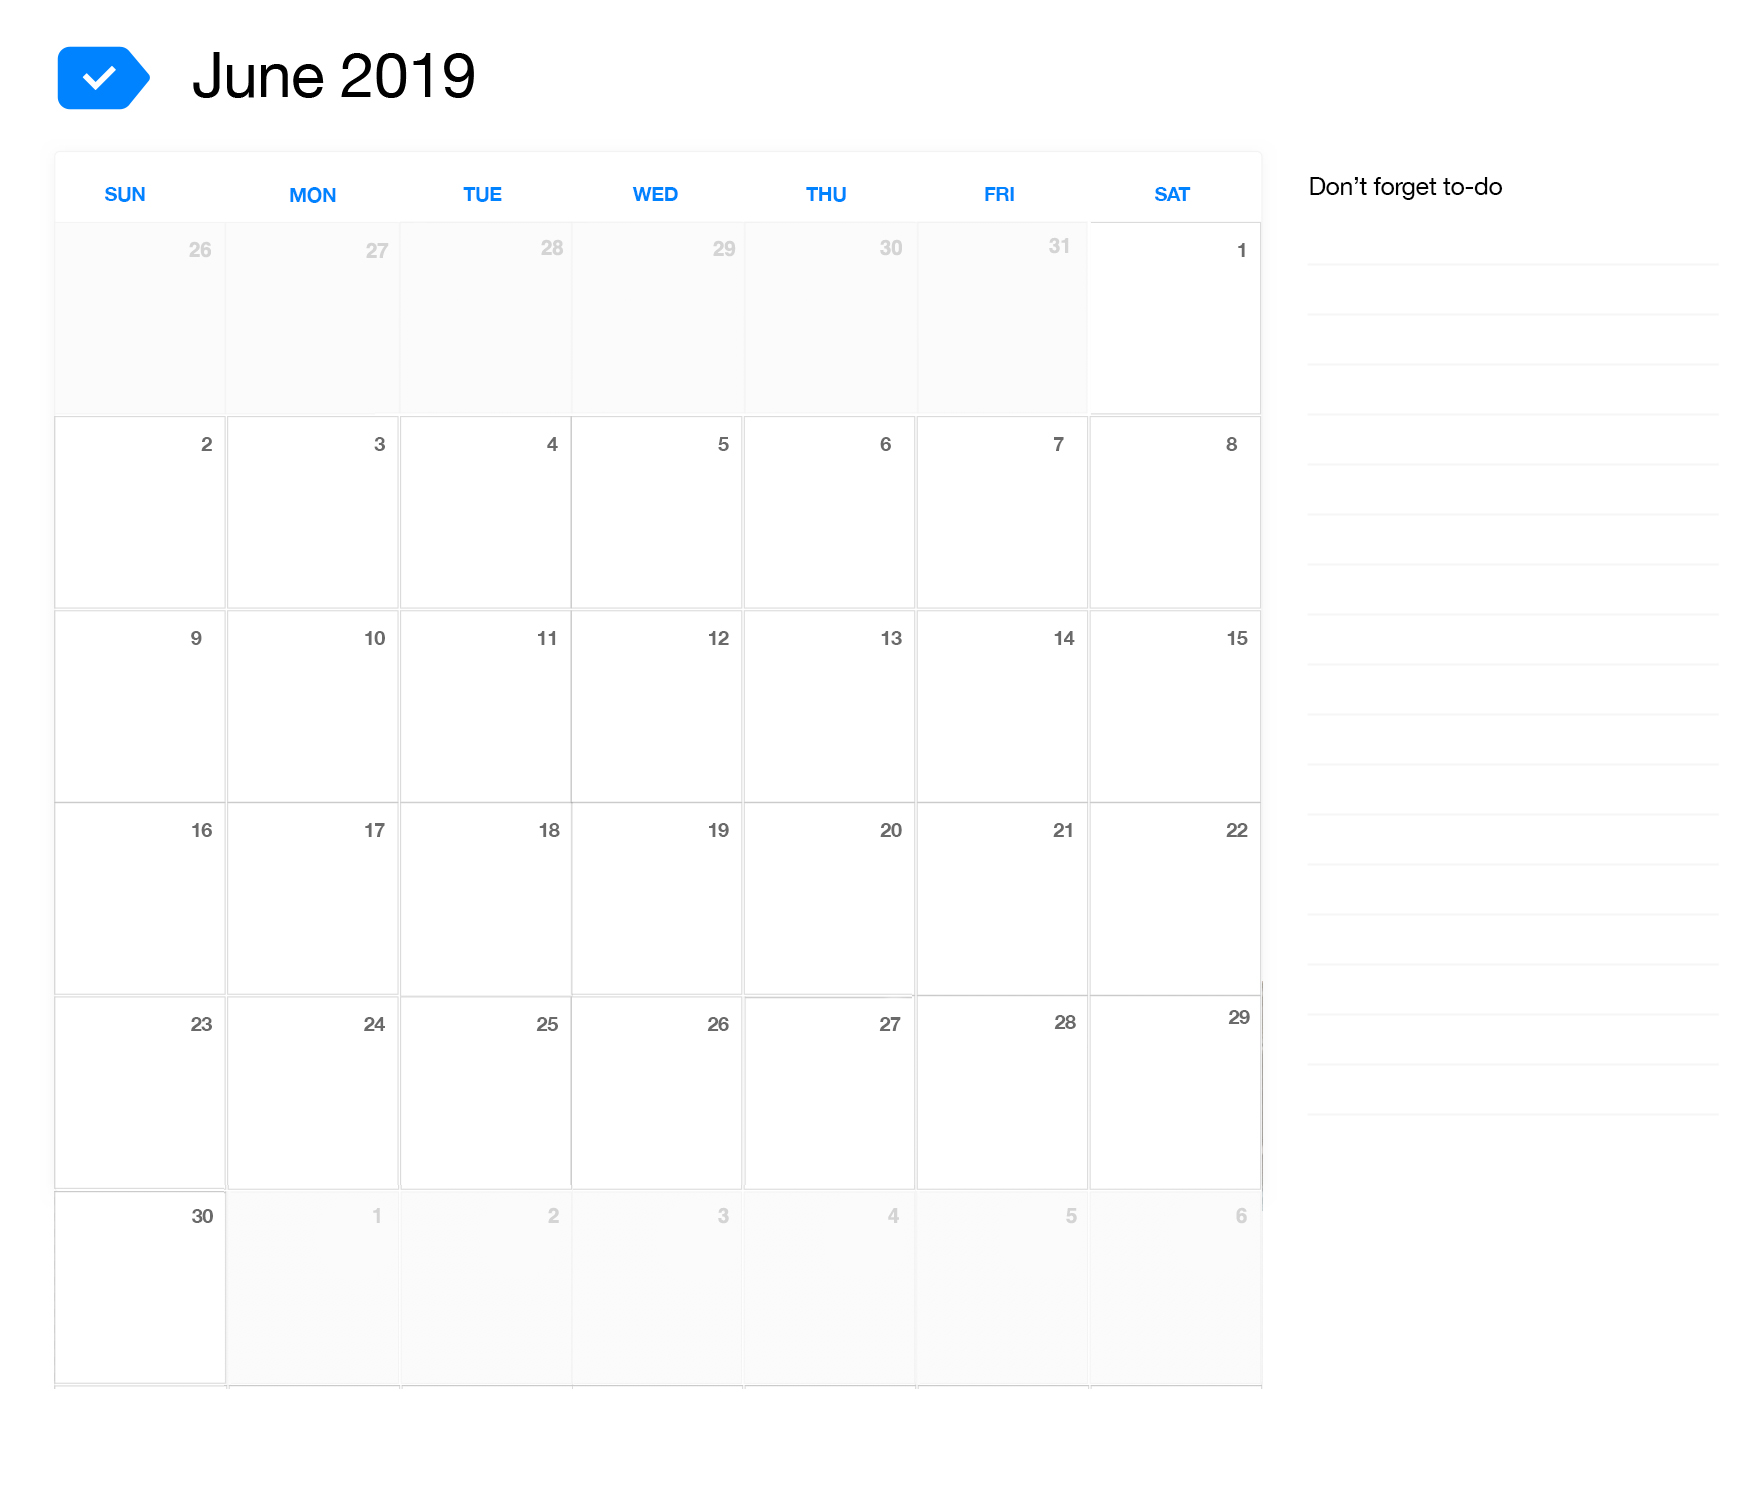 2019 June Calendar.June 2019 Printable Calendar Any Do